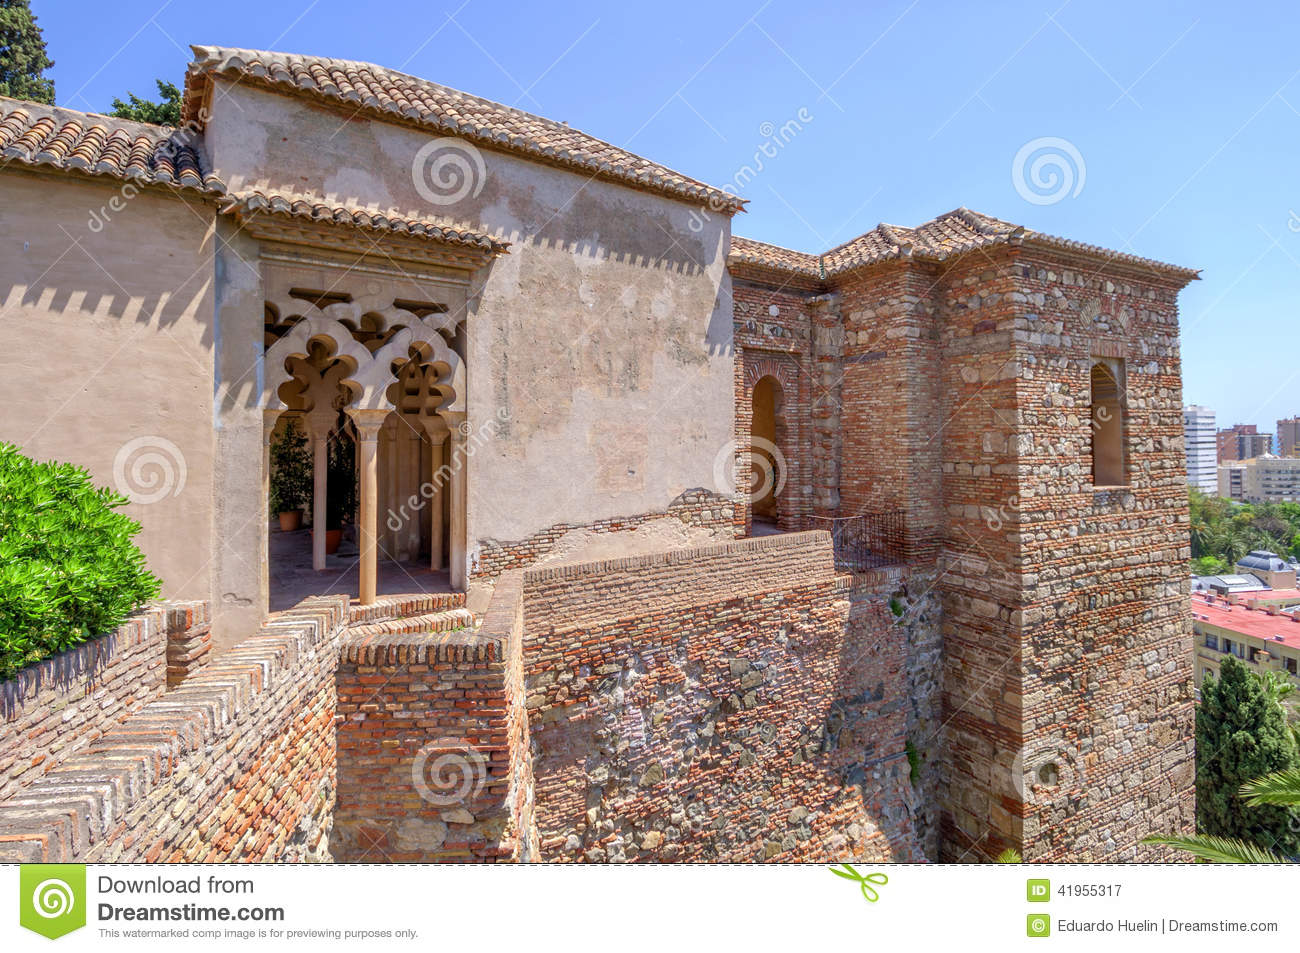 interior of the alcazaba of malaga spain stock photo image 41955317. Black Bedroom Furniture Sets. Home Design Ideas